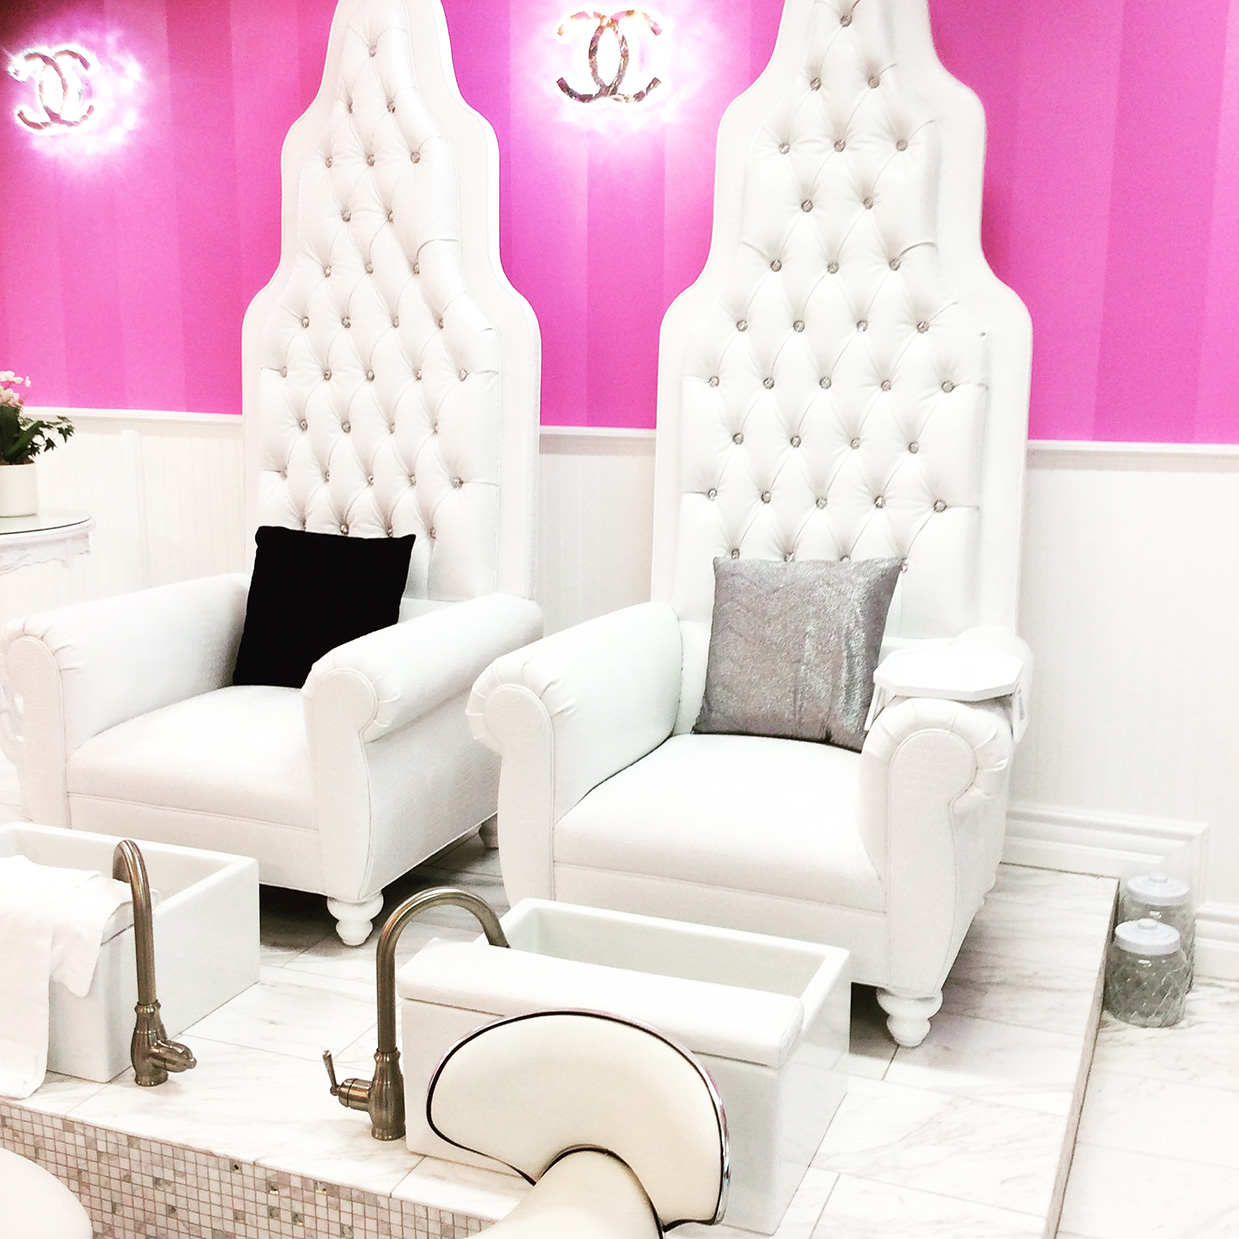 Summit Nail Bar In L.A. Is The New Glam Heaven